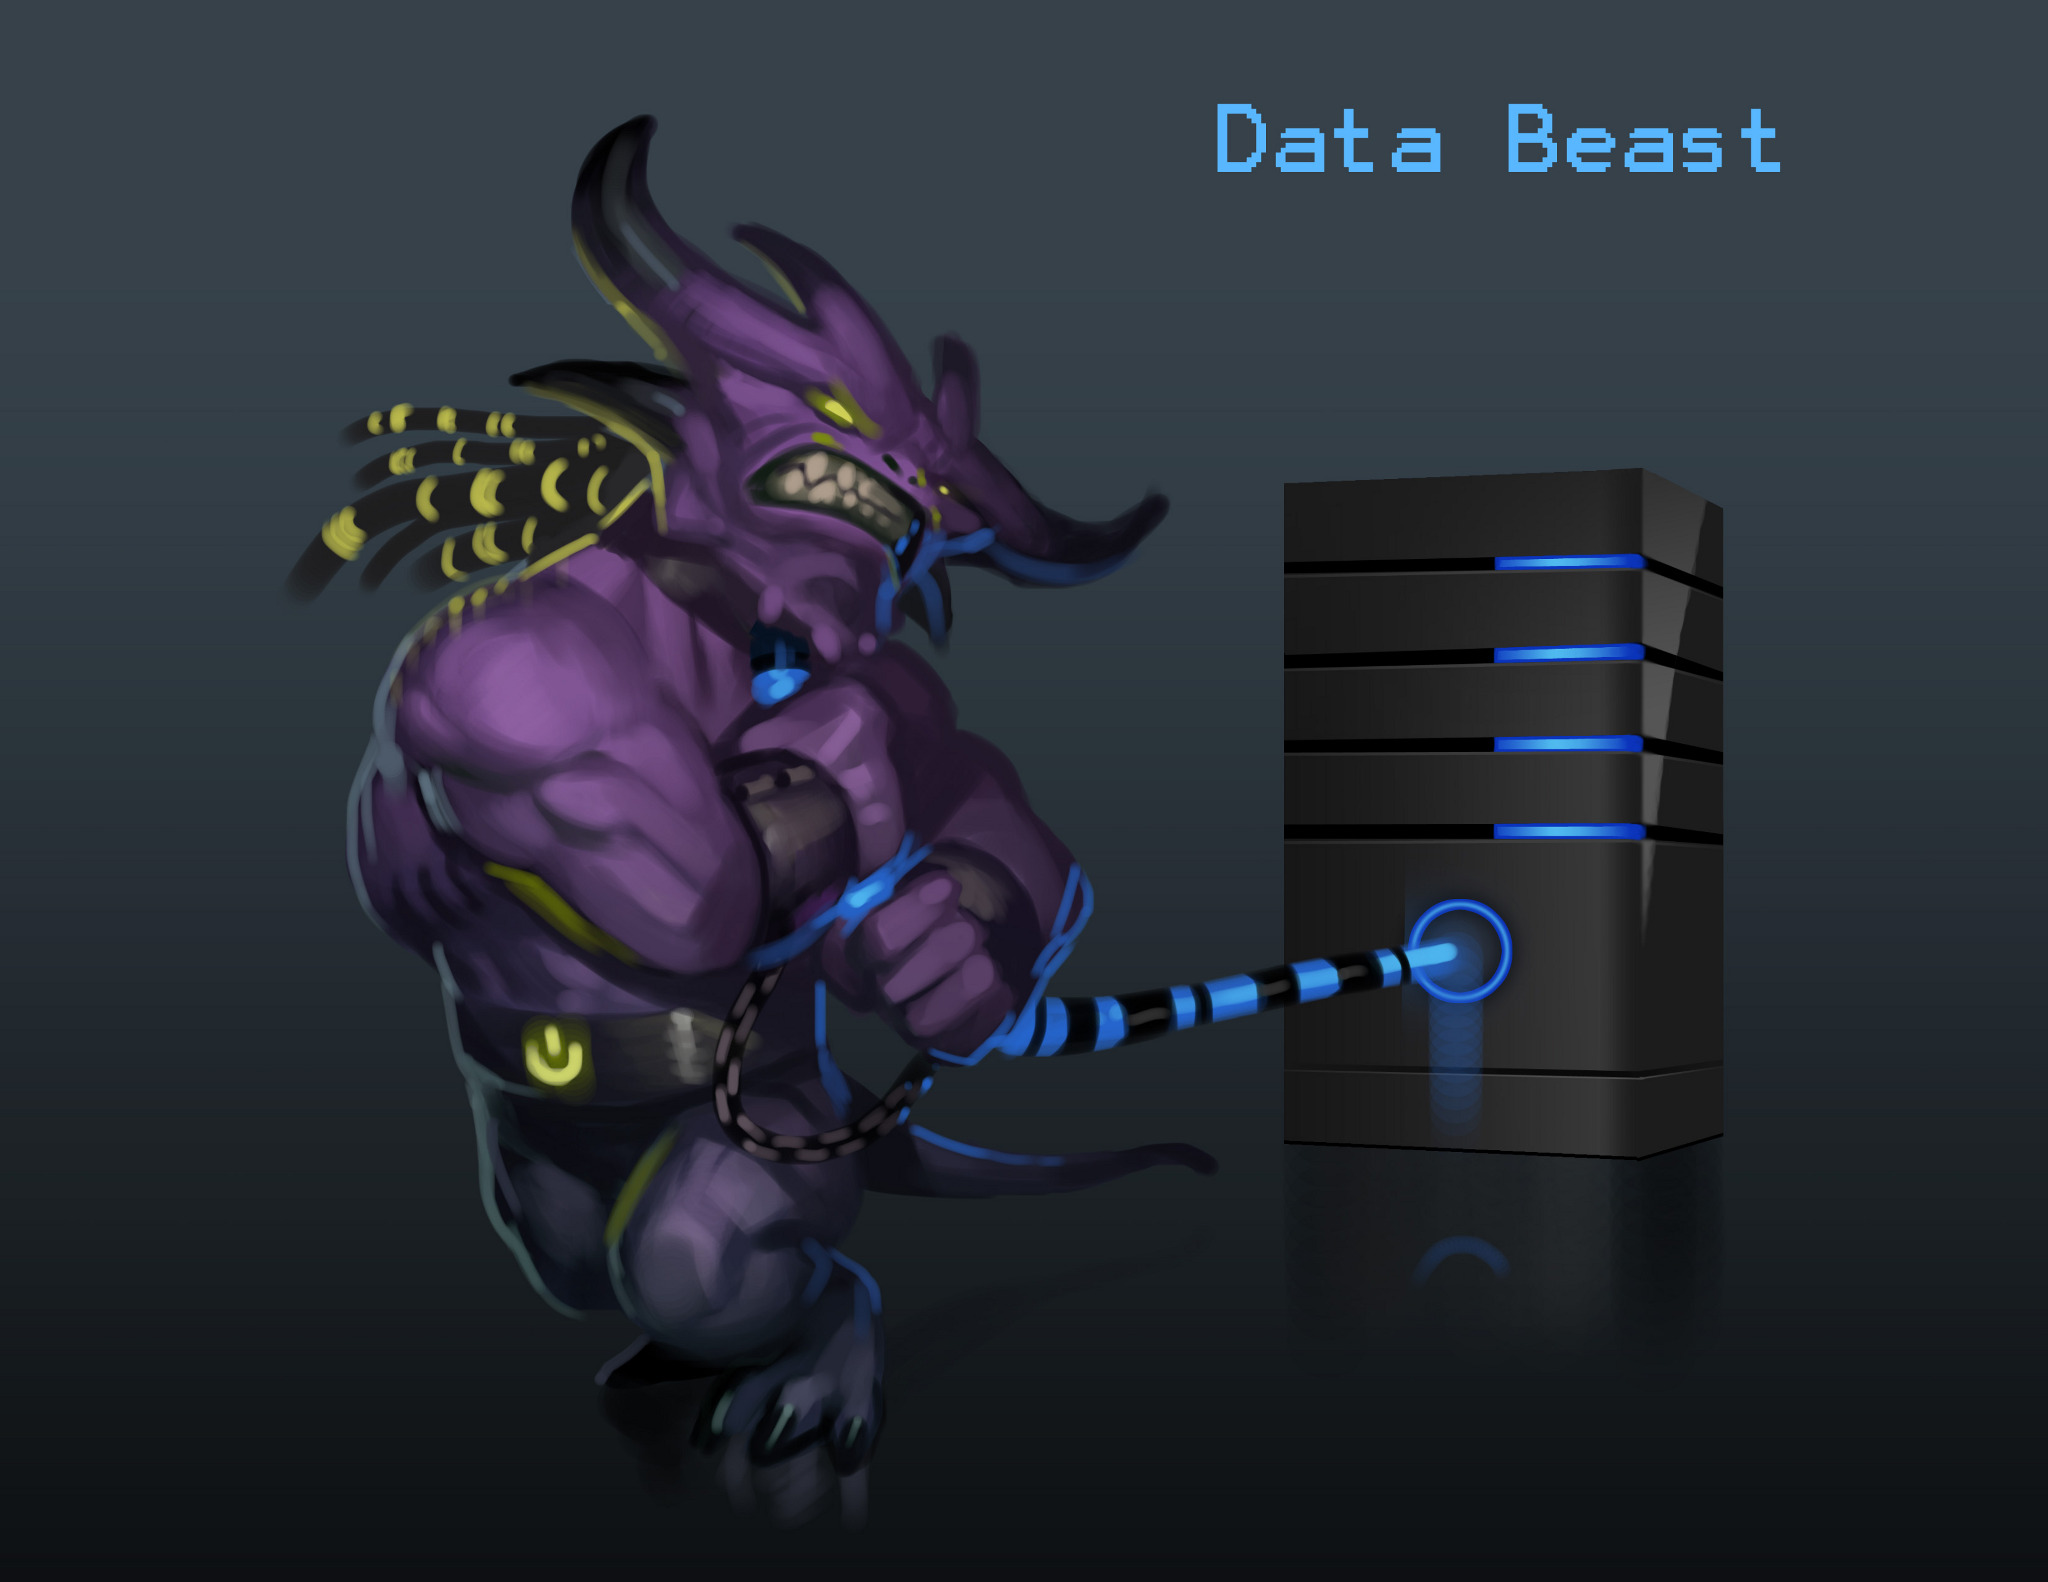 Harris-Broadcast-Invenio-Data-Beast-4.jpg